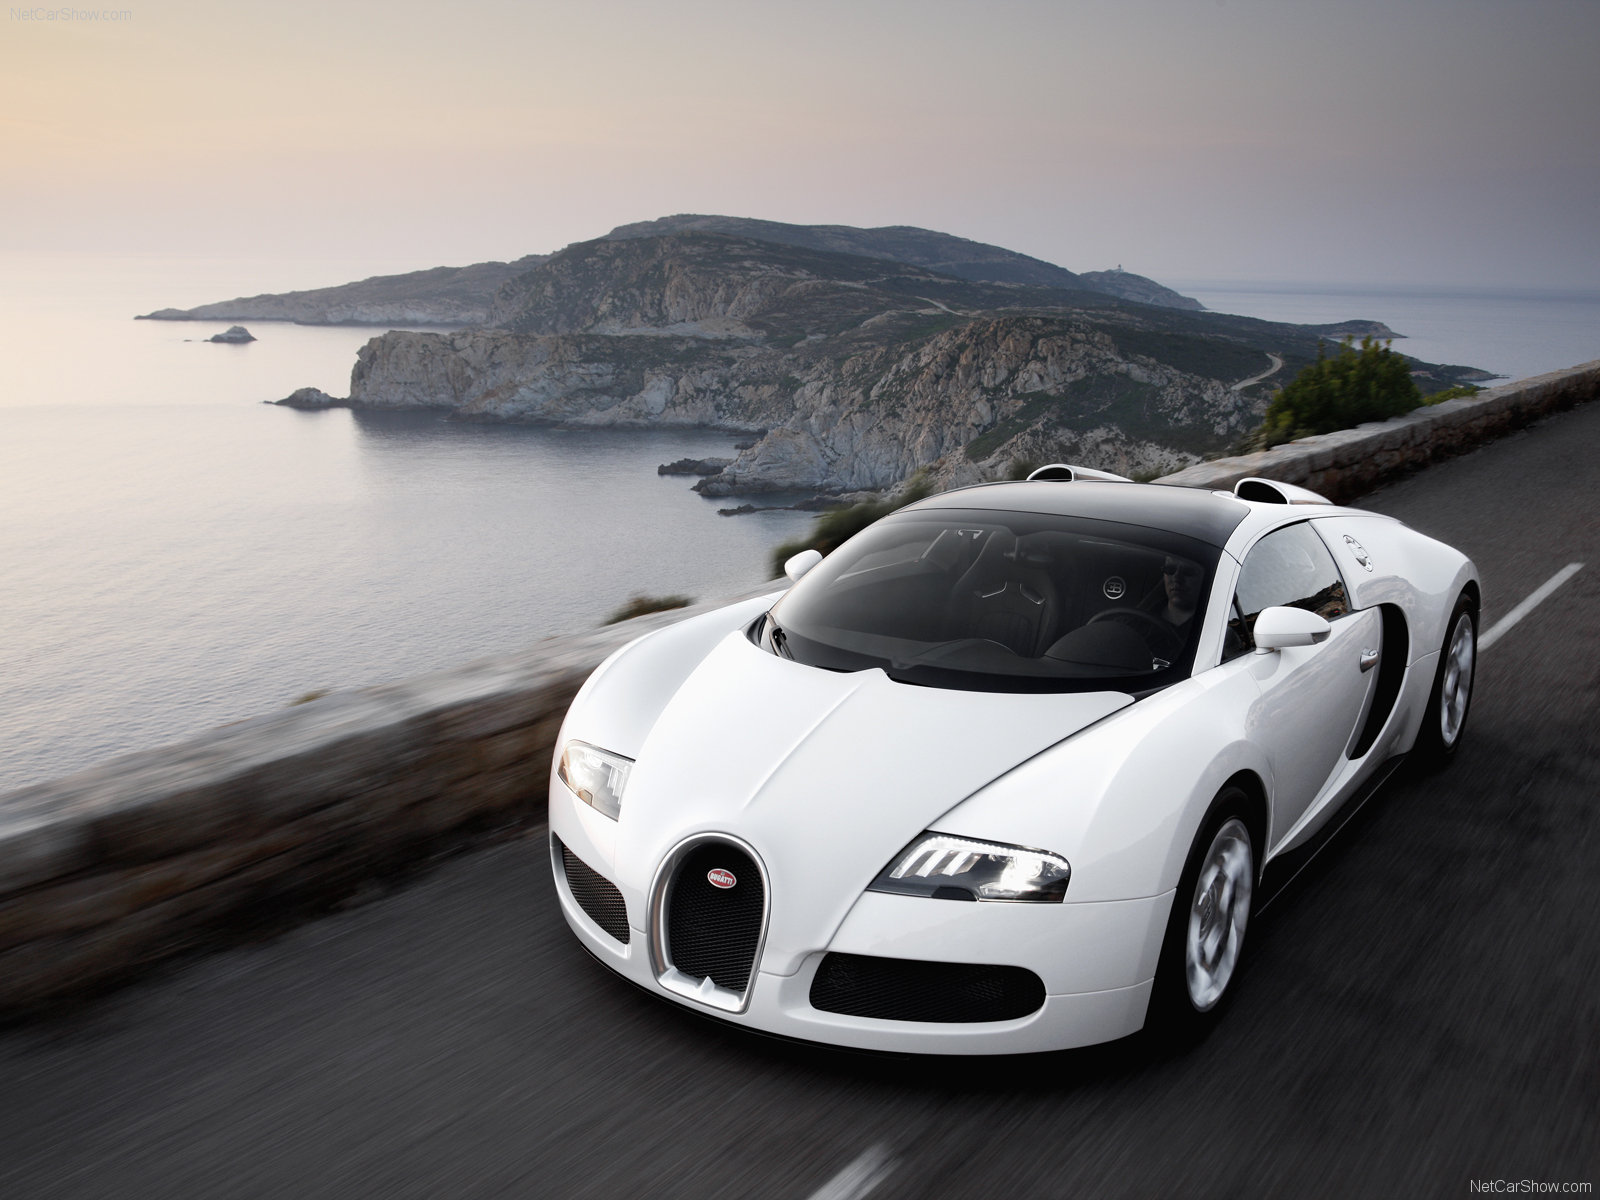 Veyron Grandsport still remaining the most jaw-dropping Bugatti 2009 model #9